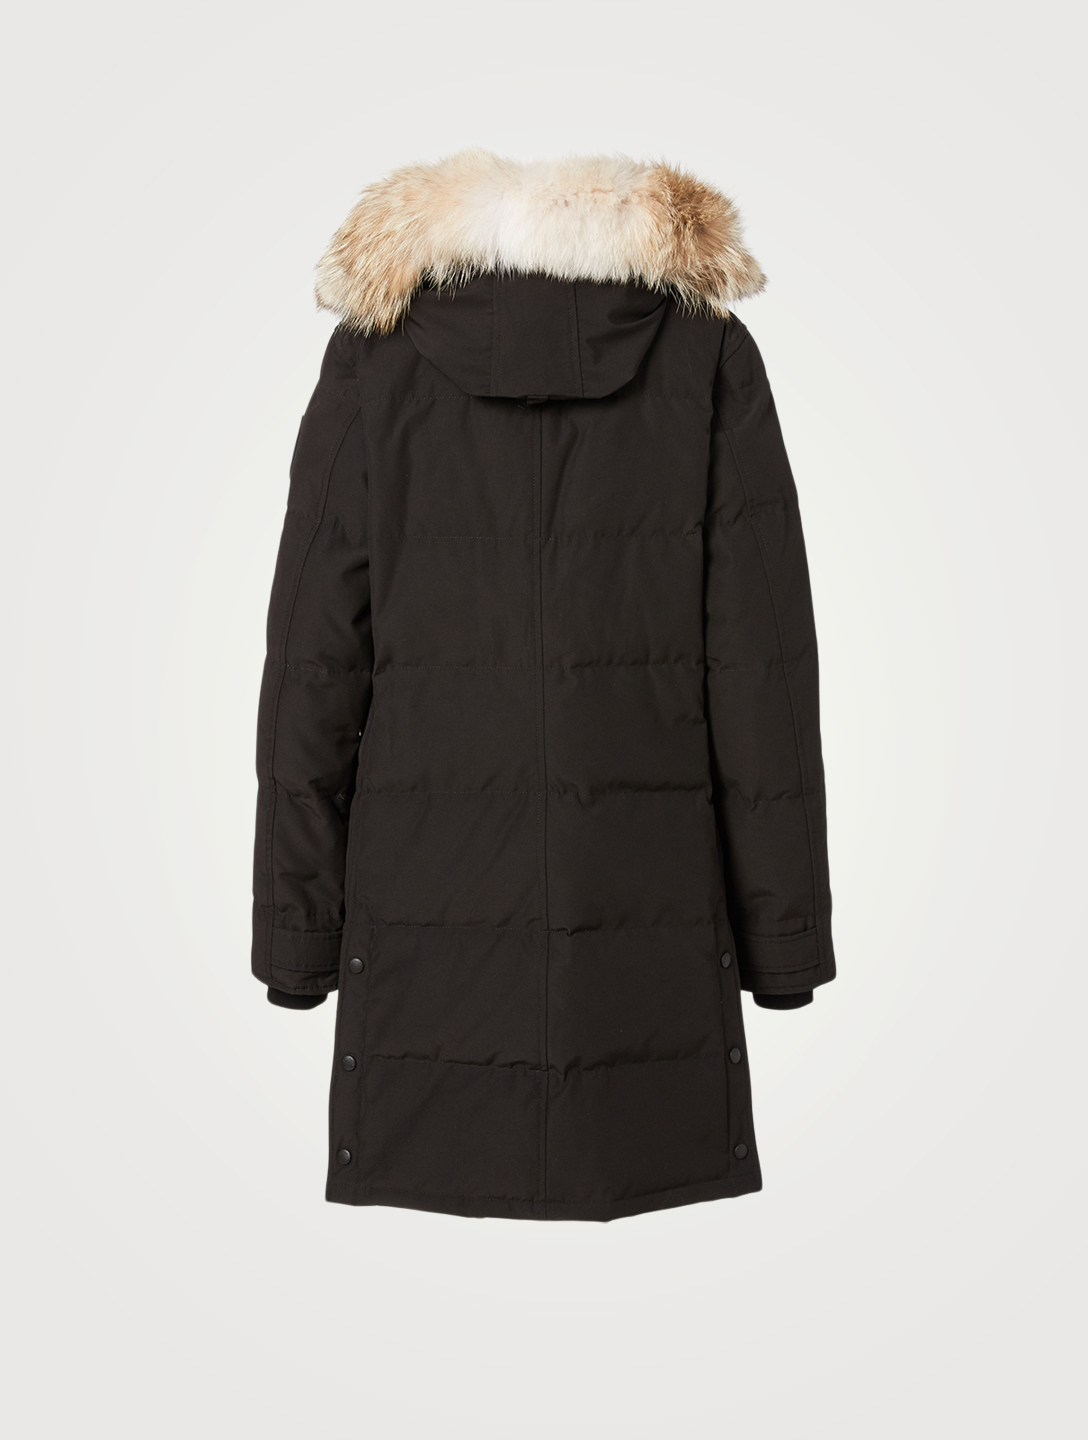 CANADA GOOSE Shelburne Black Label Down Parka With Fur Hood Women's Black